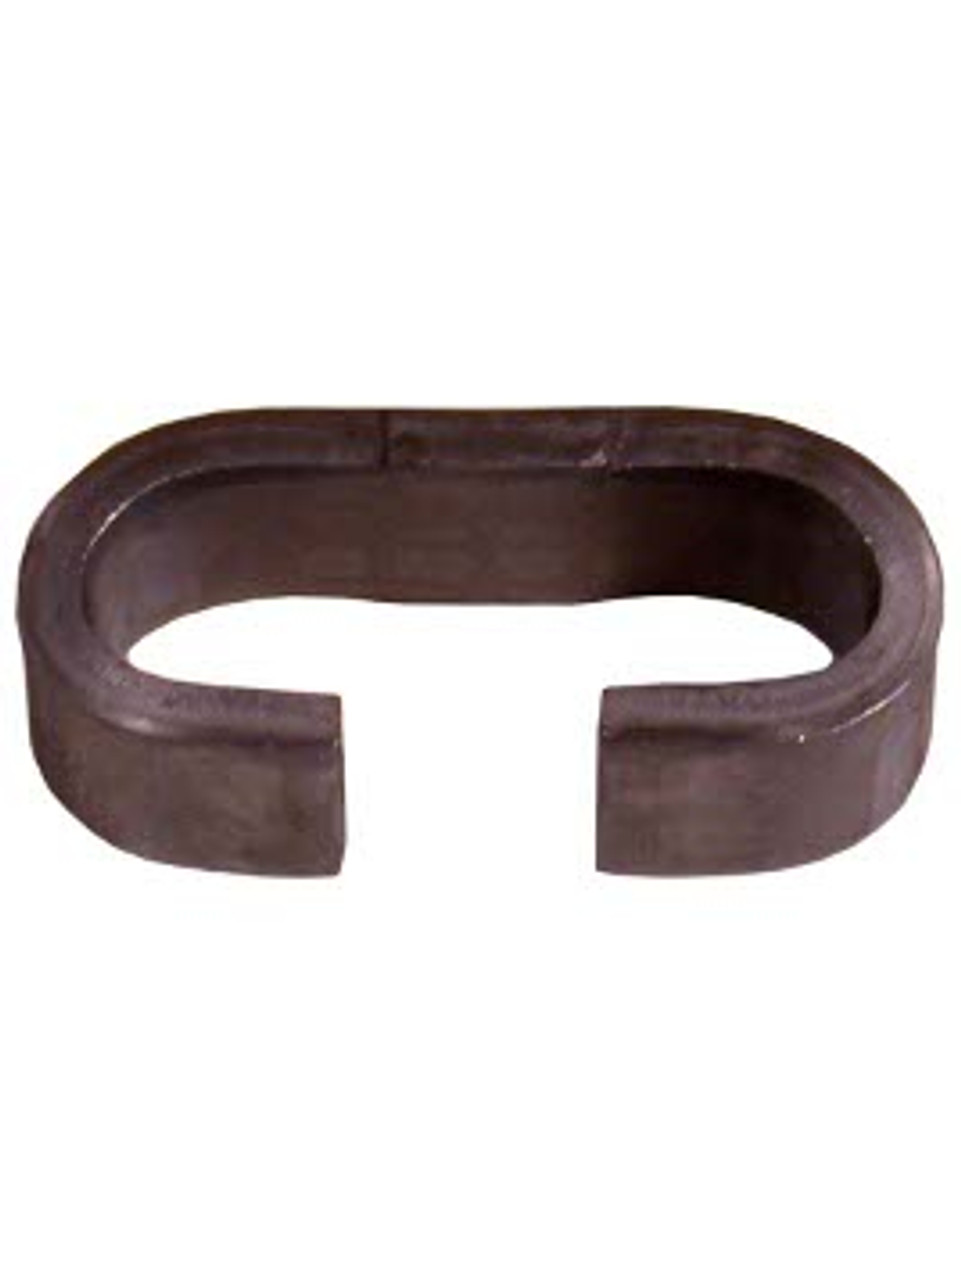 "SH134 --- Rear Hanger for 1-3/4"" Wide Slipper Spring"